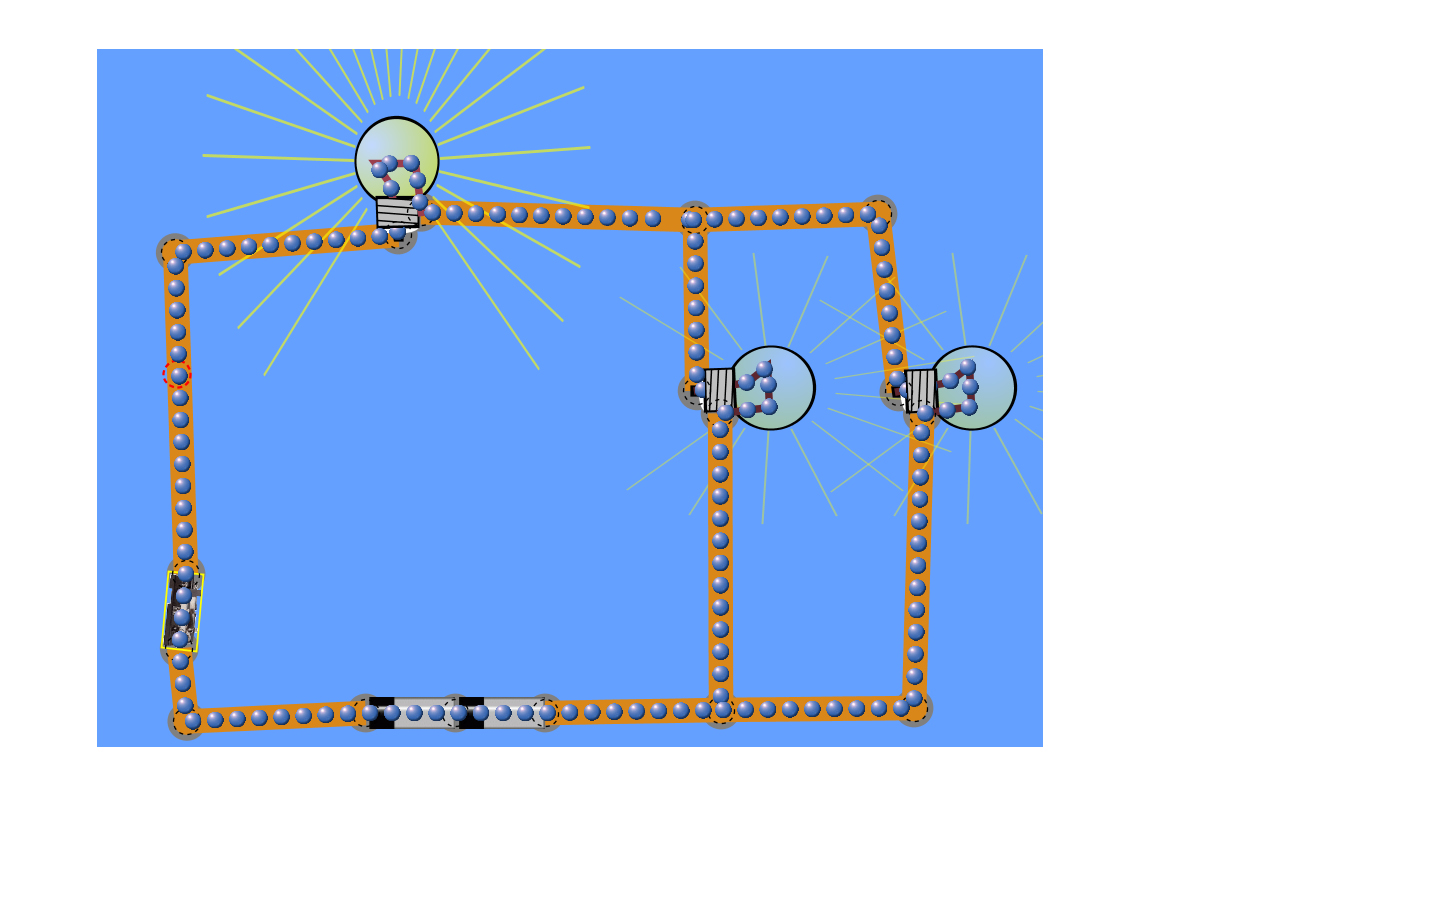 medium resolution of combination circuits have both series and parallel circuits the total resistance is found from finding the total resistance of each section